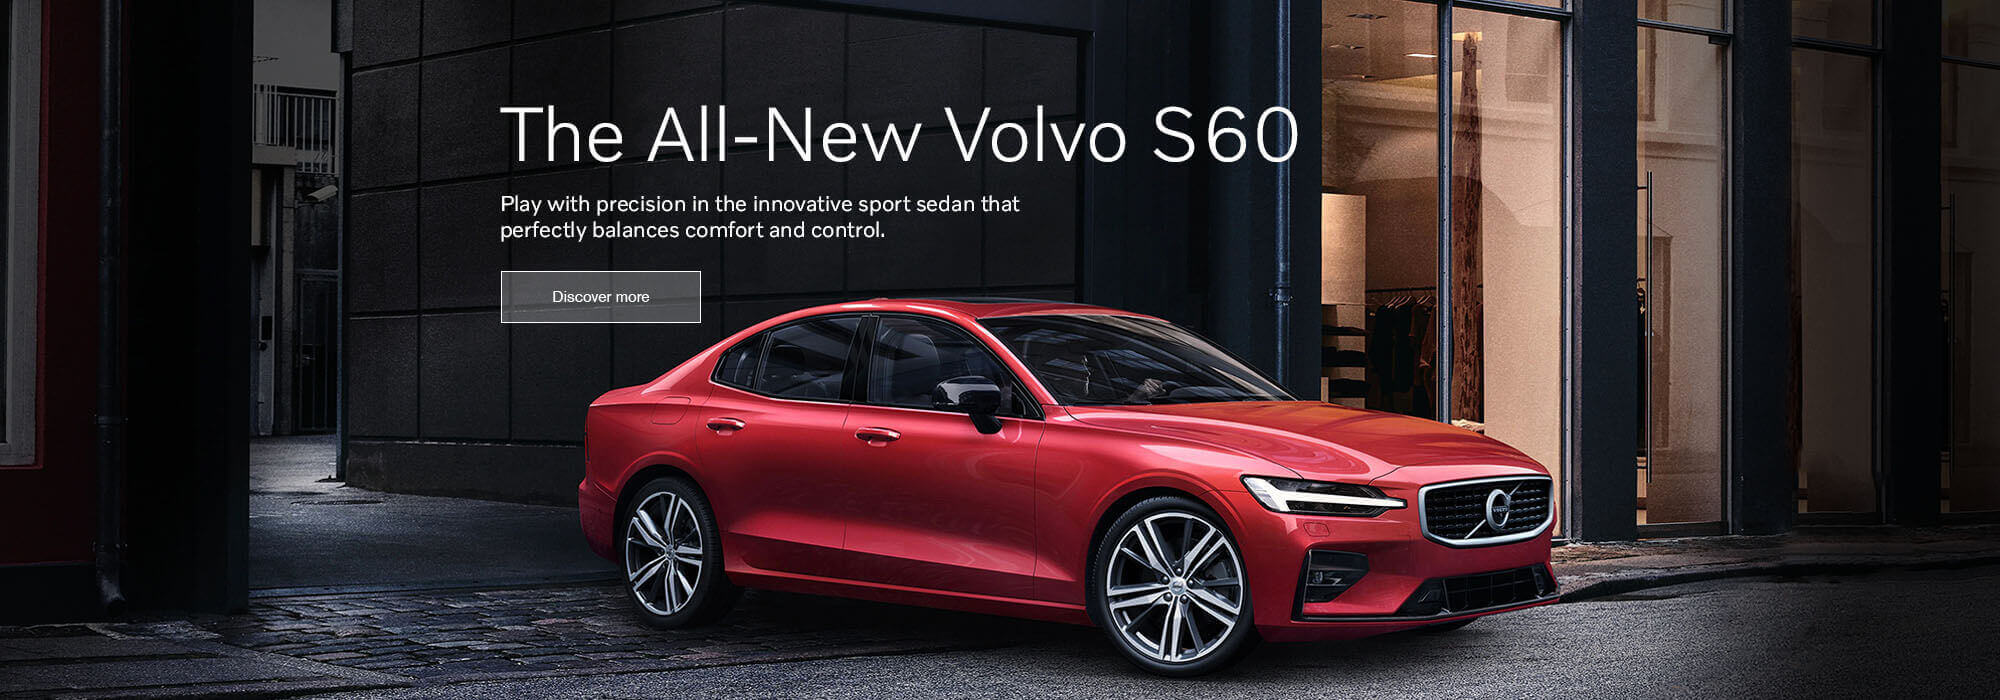 The All-New Volvo S60. Play with precision in the innovative sport sedan that perfectly balances comfort and control.